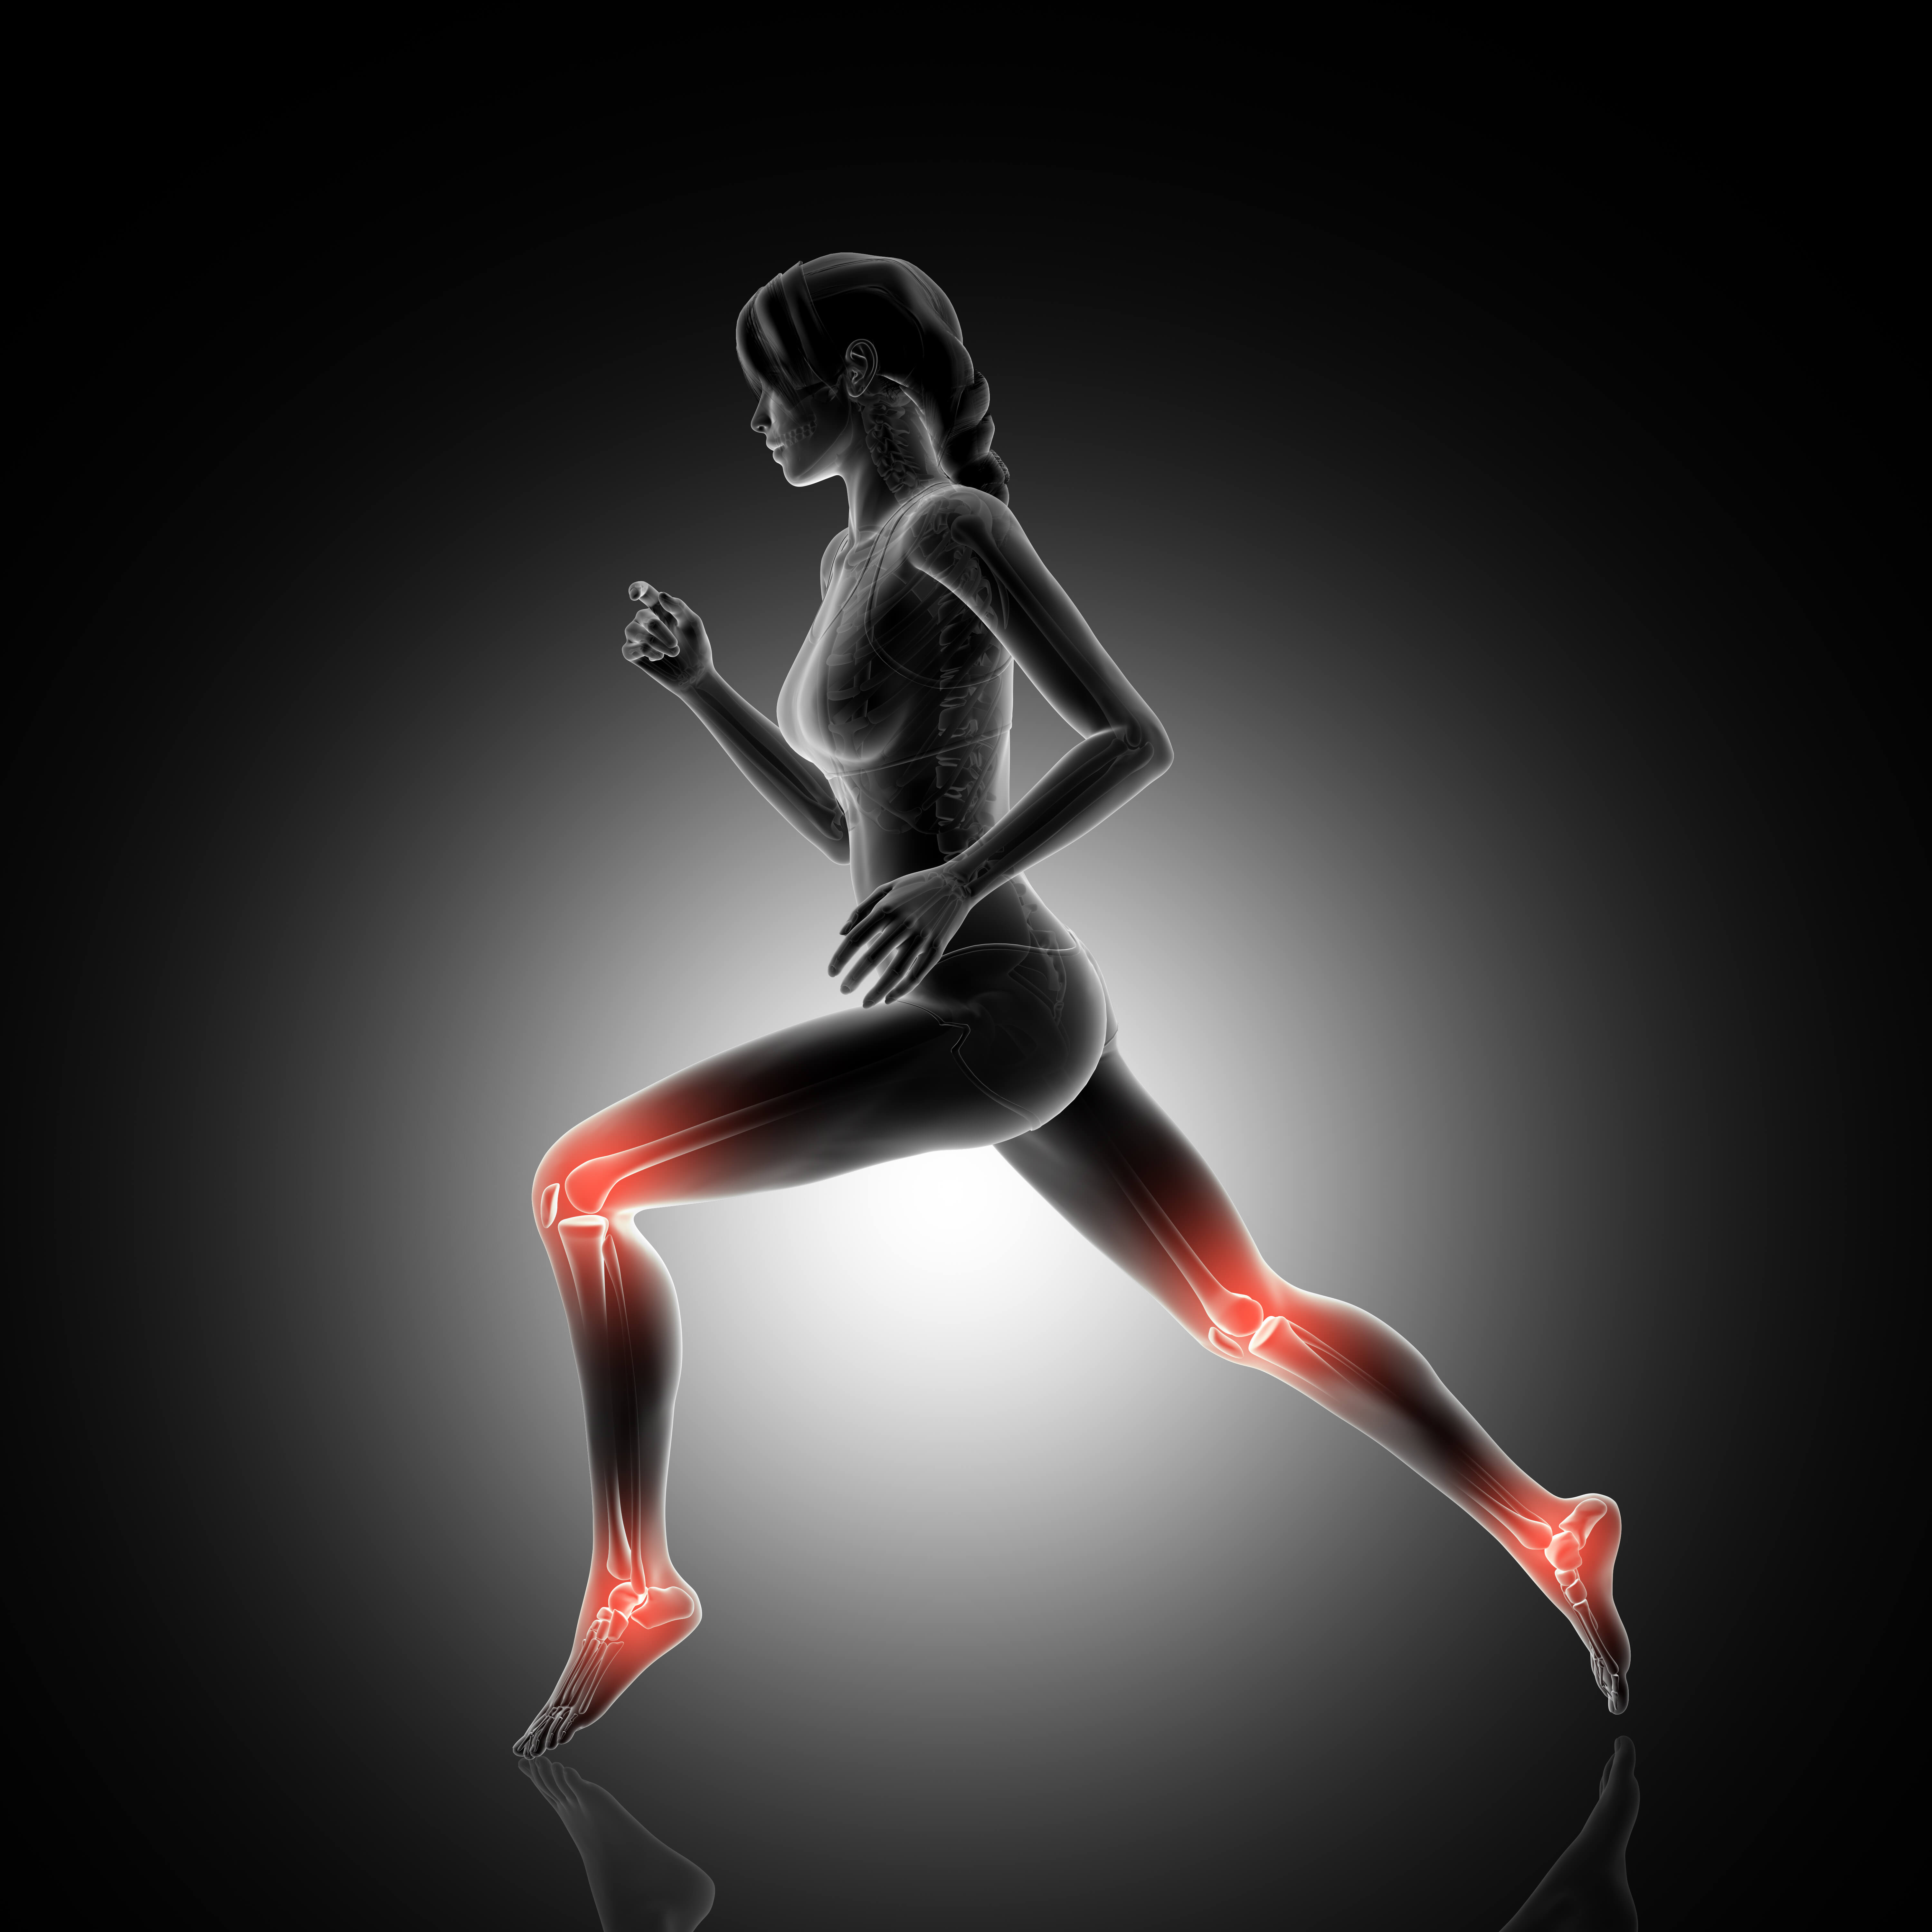 """<a href=""""https://www.freepik.com/free-photo/3d-render-of-a-female-figure-jogging-with-knee-and-ankle-joints-highlighted_1219795.htm"""">Designed by Kjpargeter</a>"""